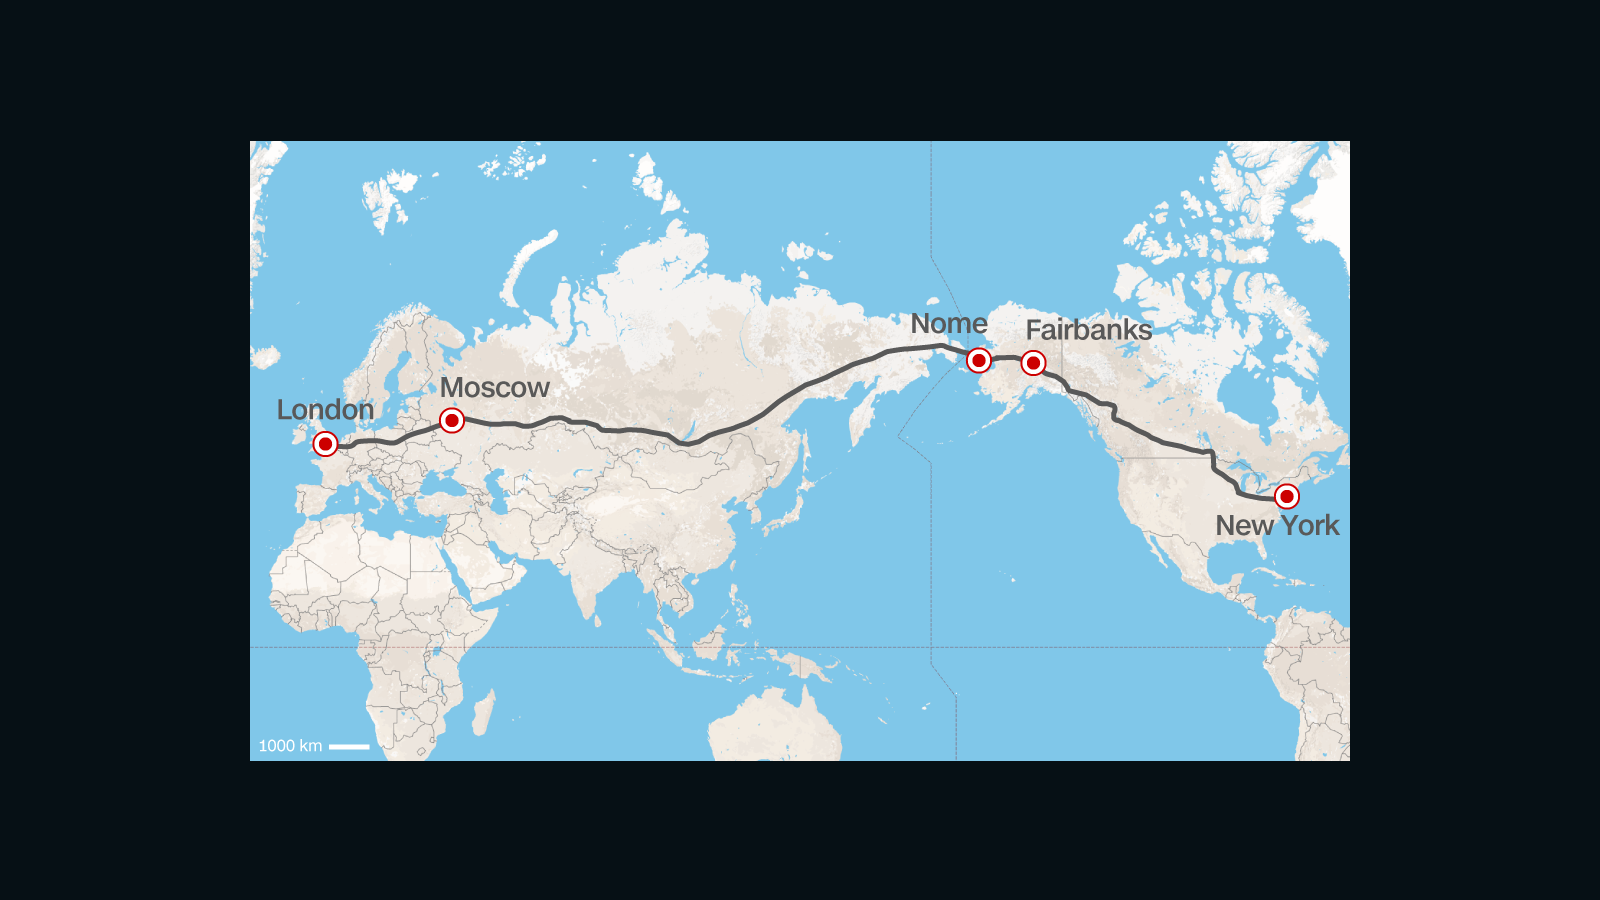 Road from Europe to U.S.? Russia proposes superhighway | CNN ... Road Map Of Northern Alaska on road map france, road map washington, road map hawaii, road map canada, road map manitoba, road map new jersey, road map china, road map baffin island, road map iceland, road map guatemala, road map kenya, road map scandinavia, road map ukraine, road map europe, road map siberia, road map maryland, road map connecticut, road map utah, road map japan, road map virginia,